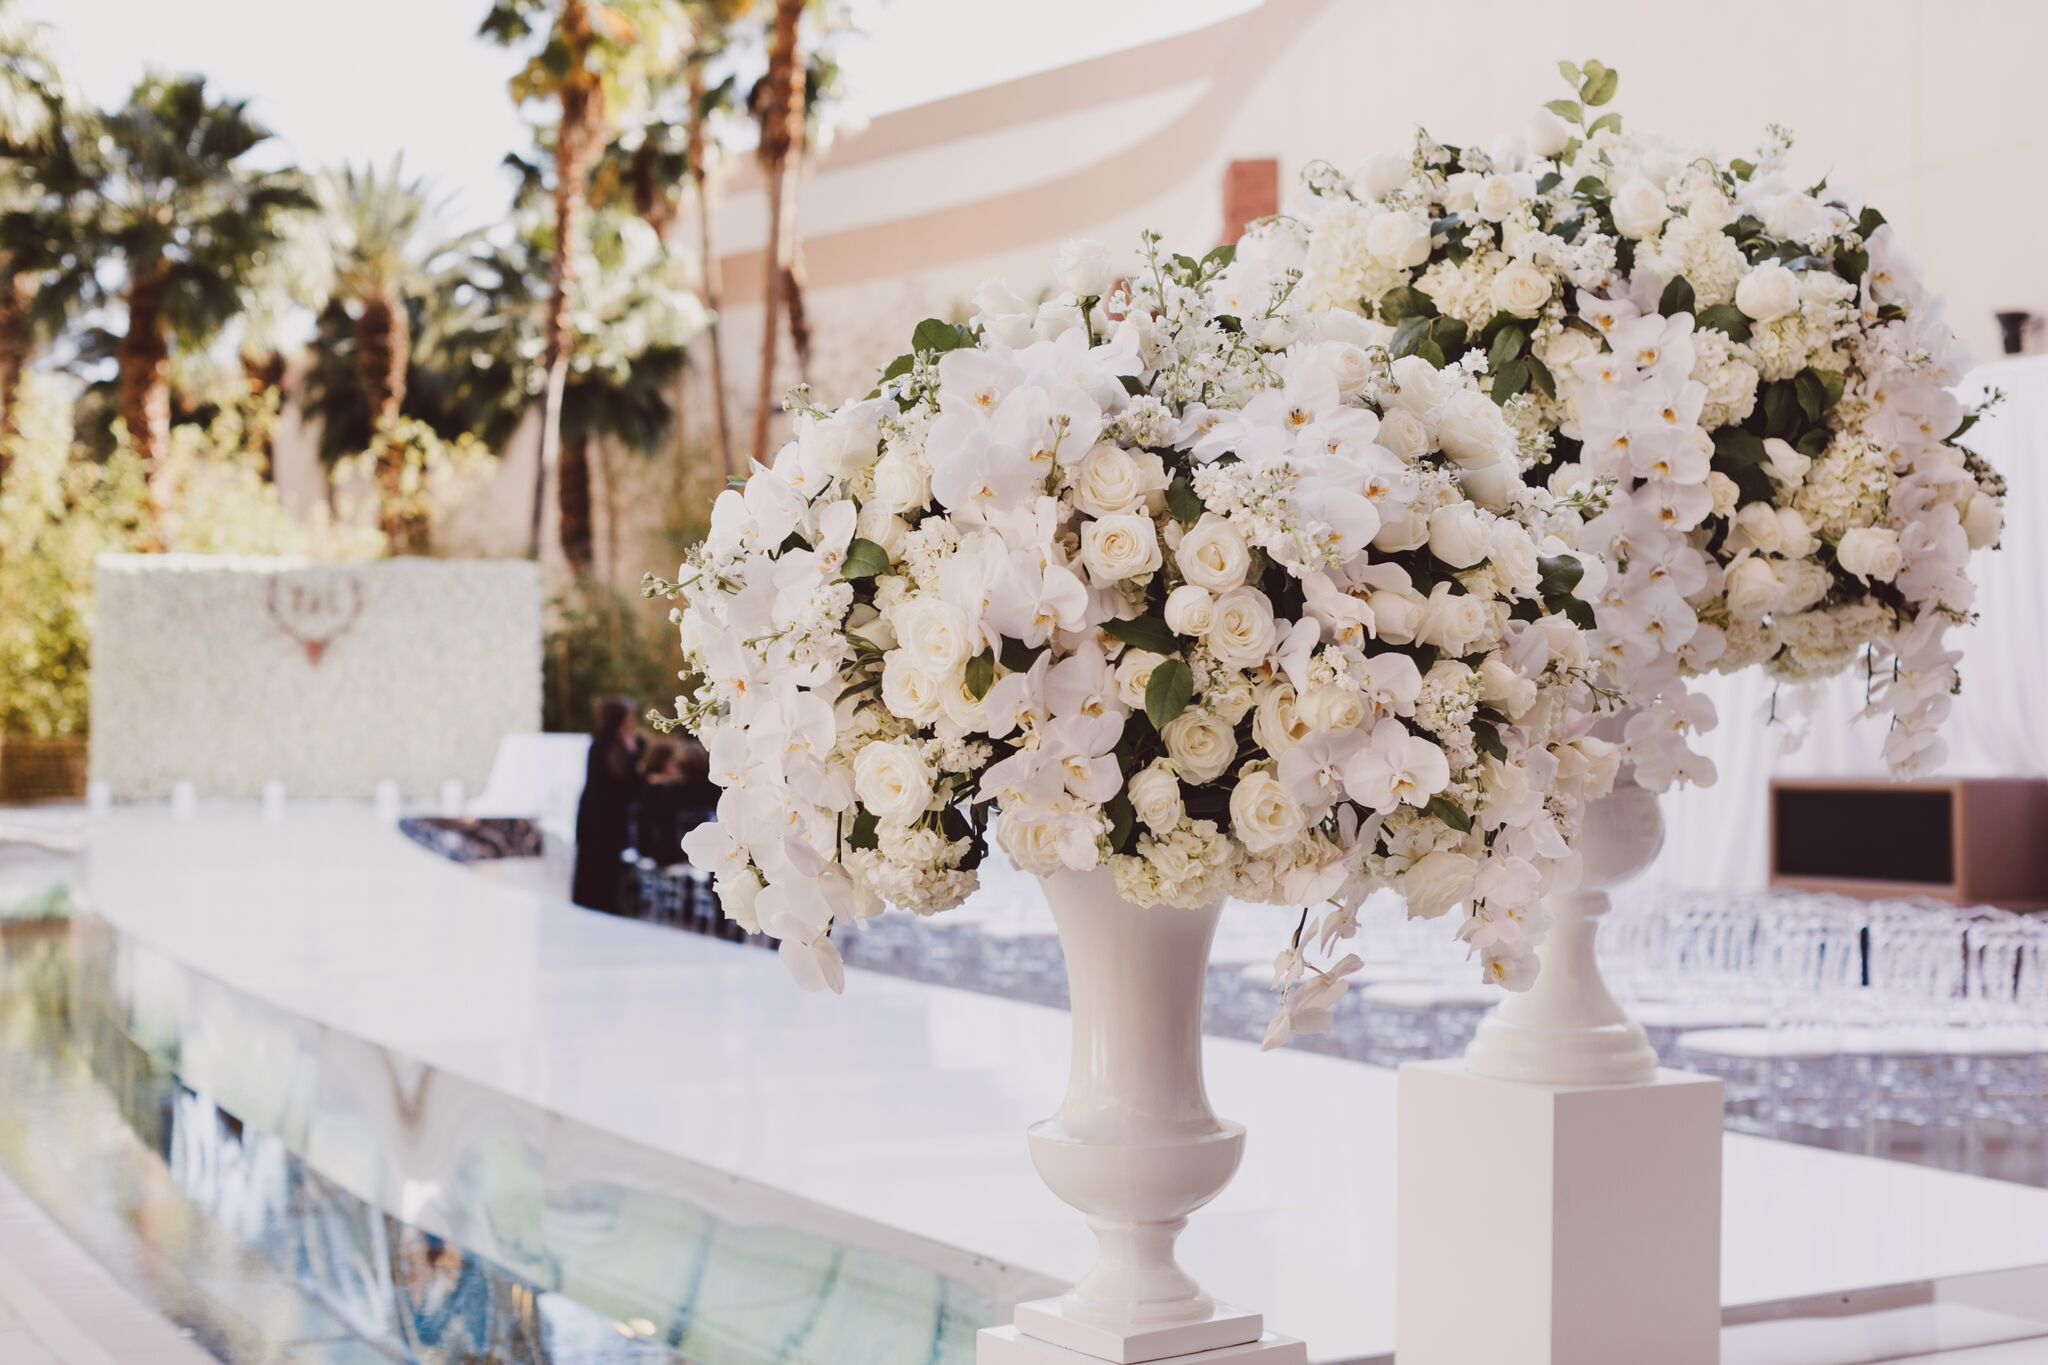 Big white flowers at an over the top wedding ceremony. Photo by Adam Trujillo.